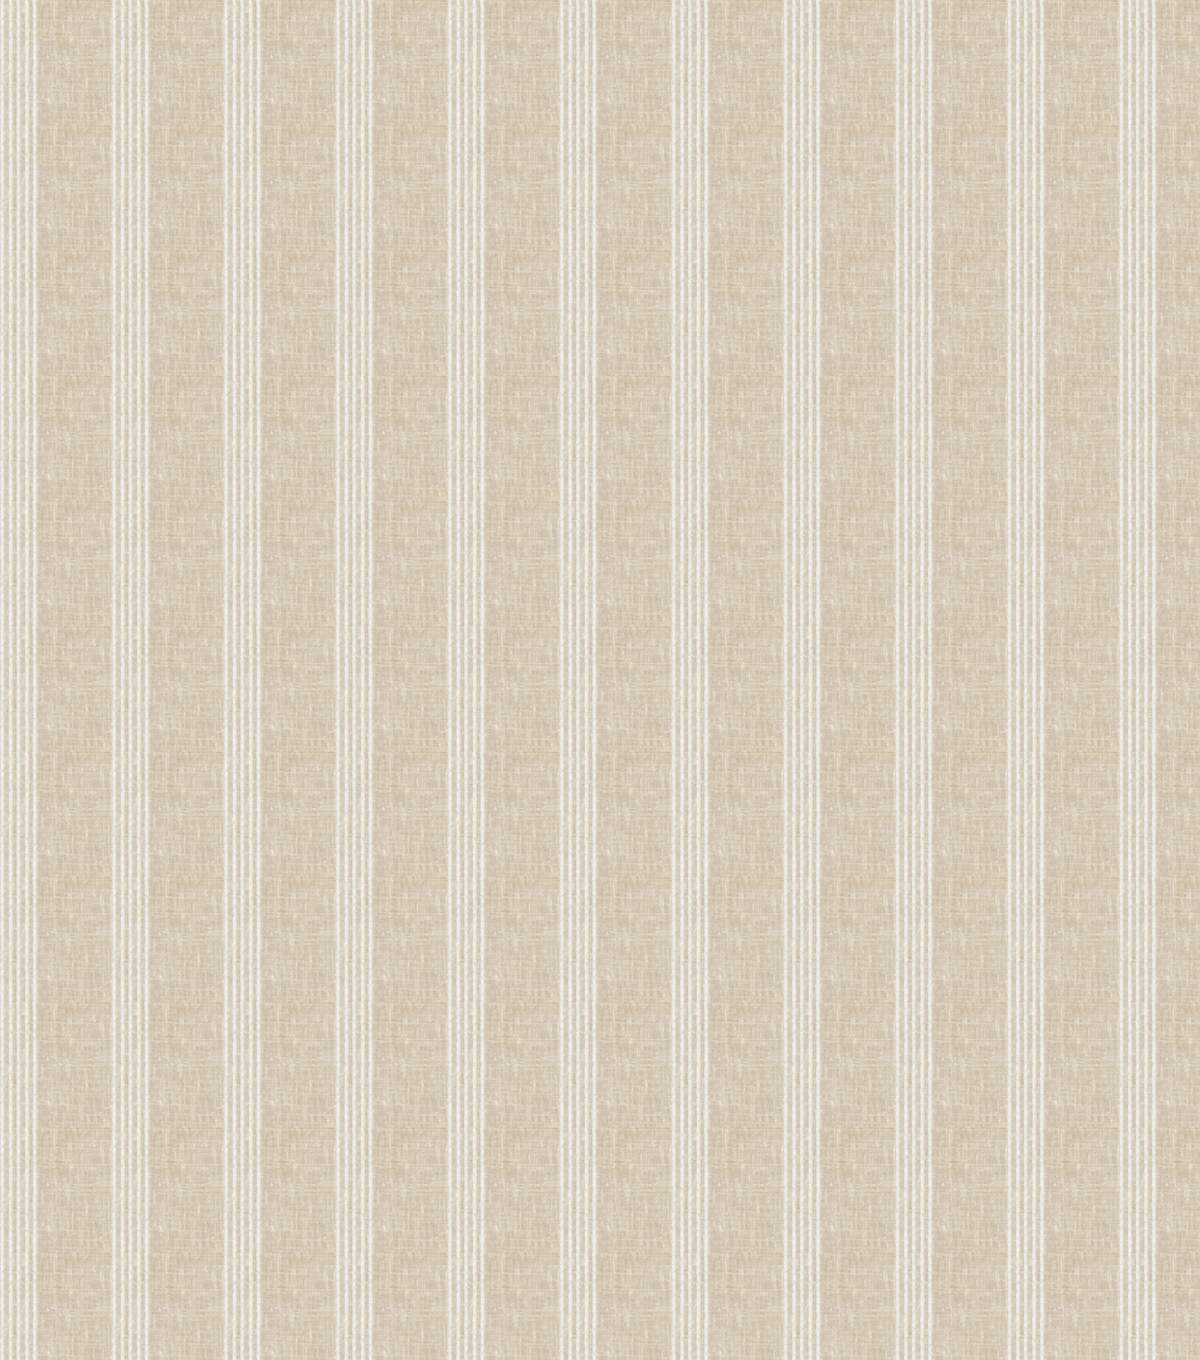 Eaton Square Sheer Fabric-Winner/Sand